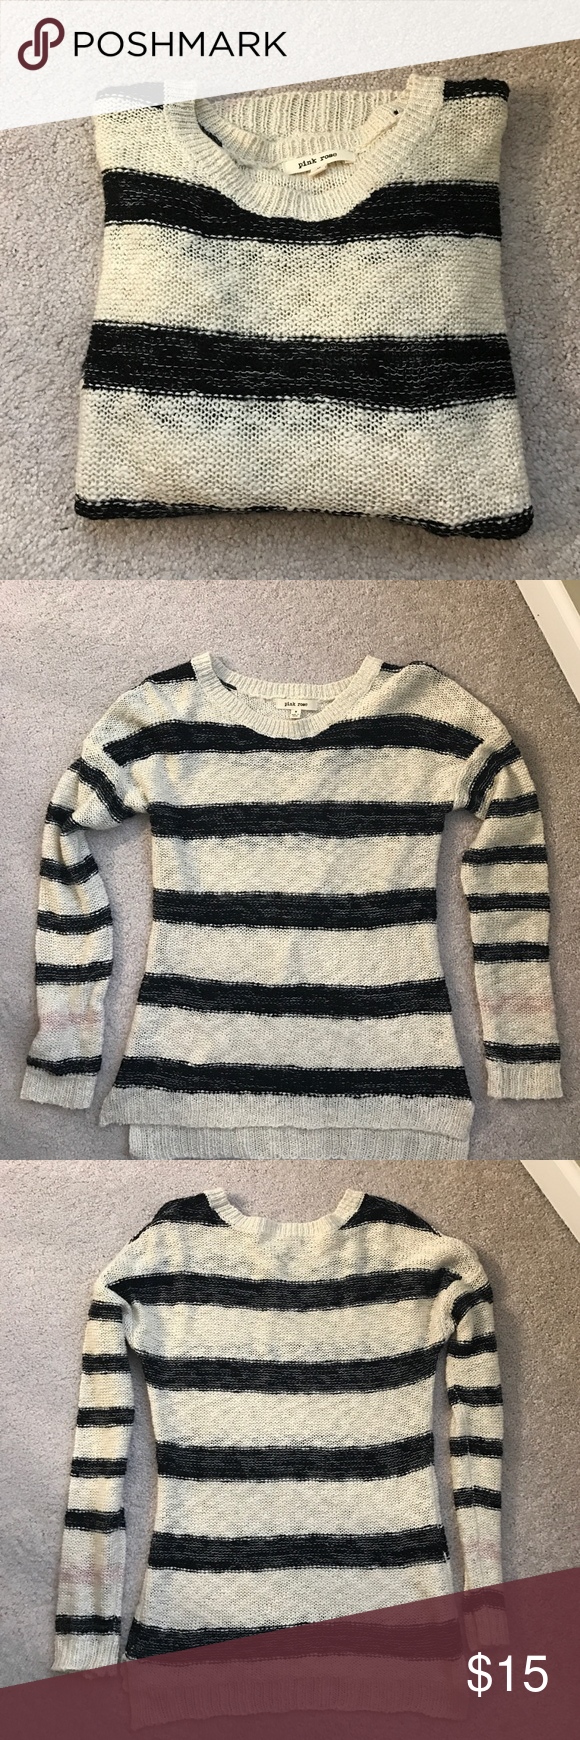 Cream and Black Striped Sweater Open knit lightweight sweater. This sweater does have a shape to it unlike a lot of sweaters. So cute on but sadly it's too small. Would fit. Small or a smaller medium much better Pink Rose Sweaters Crew & Scoop Necks